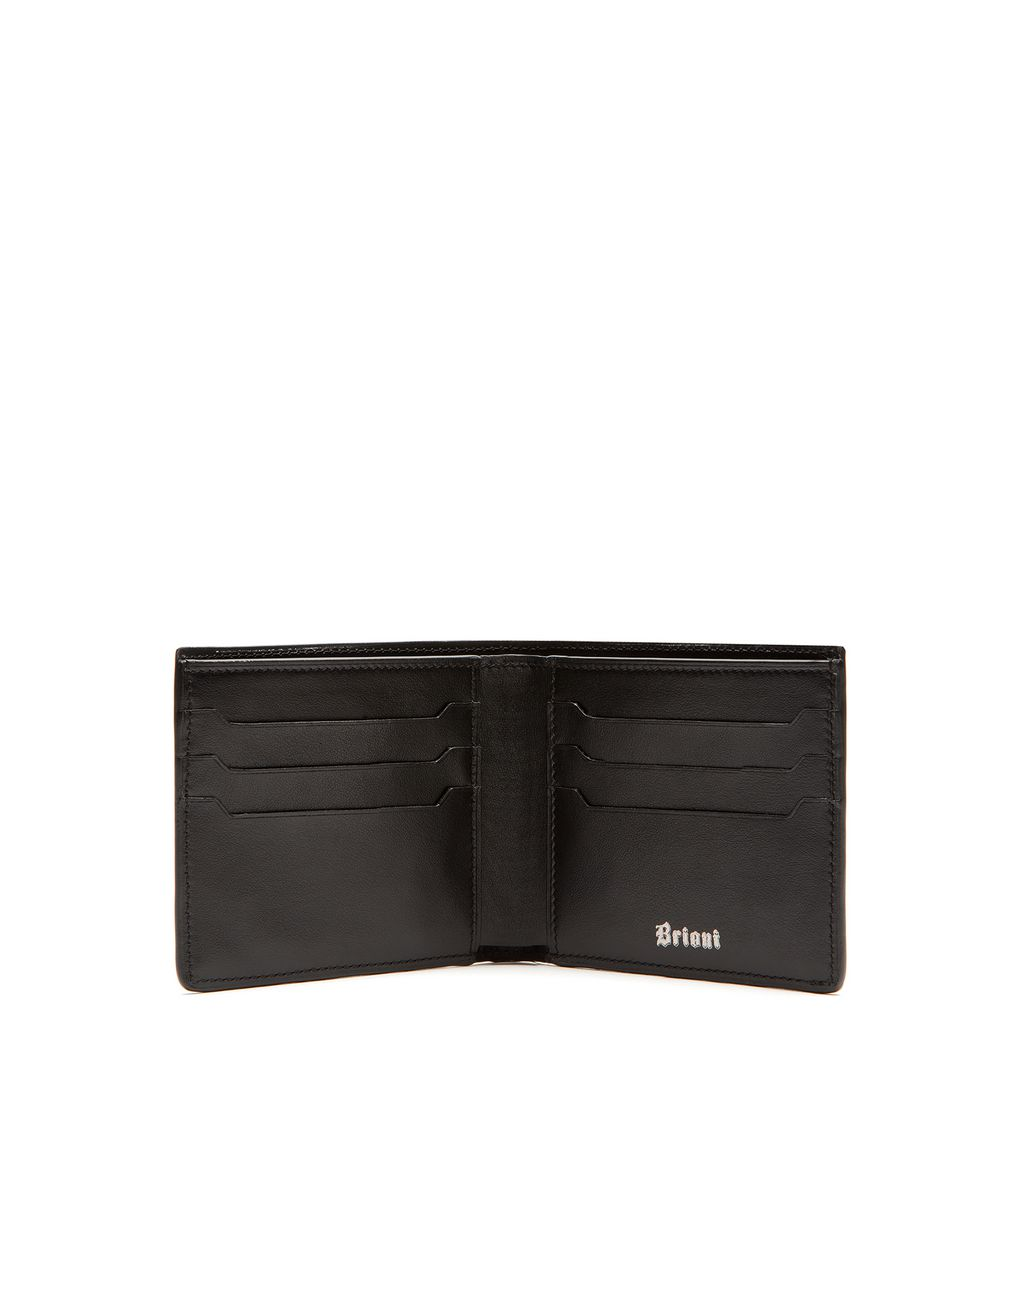 BRIONI Black Slim Wallet Leather Goods U r